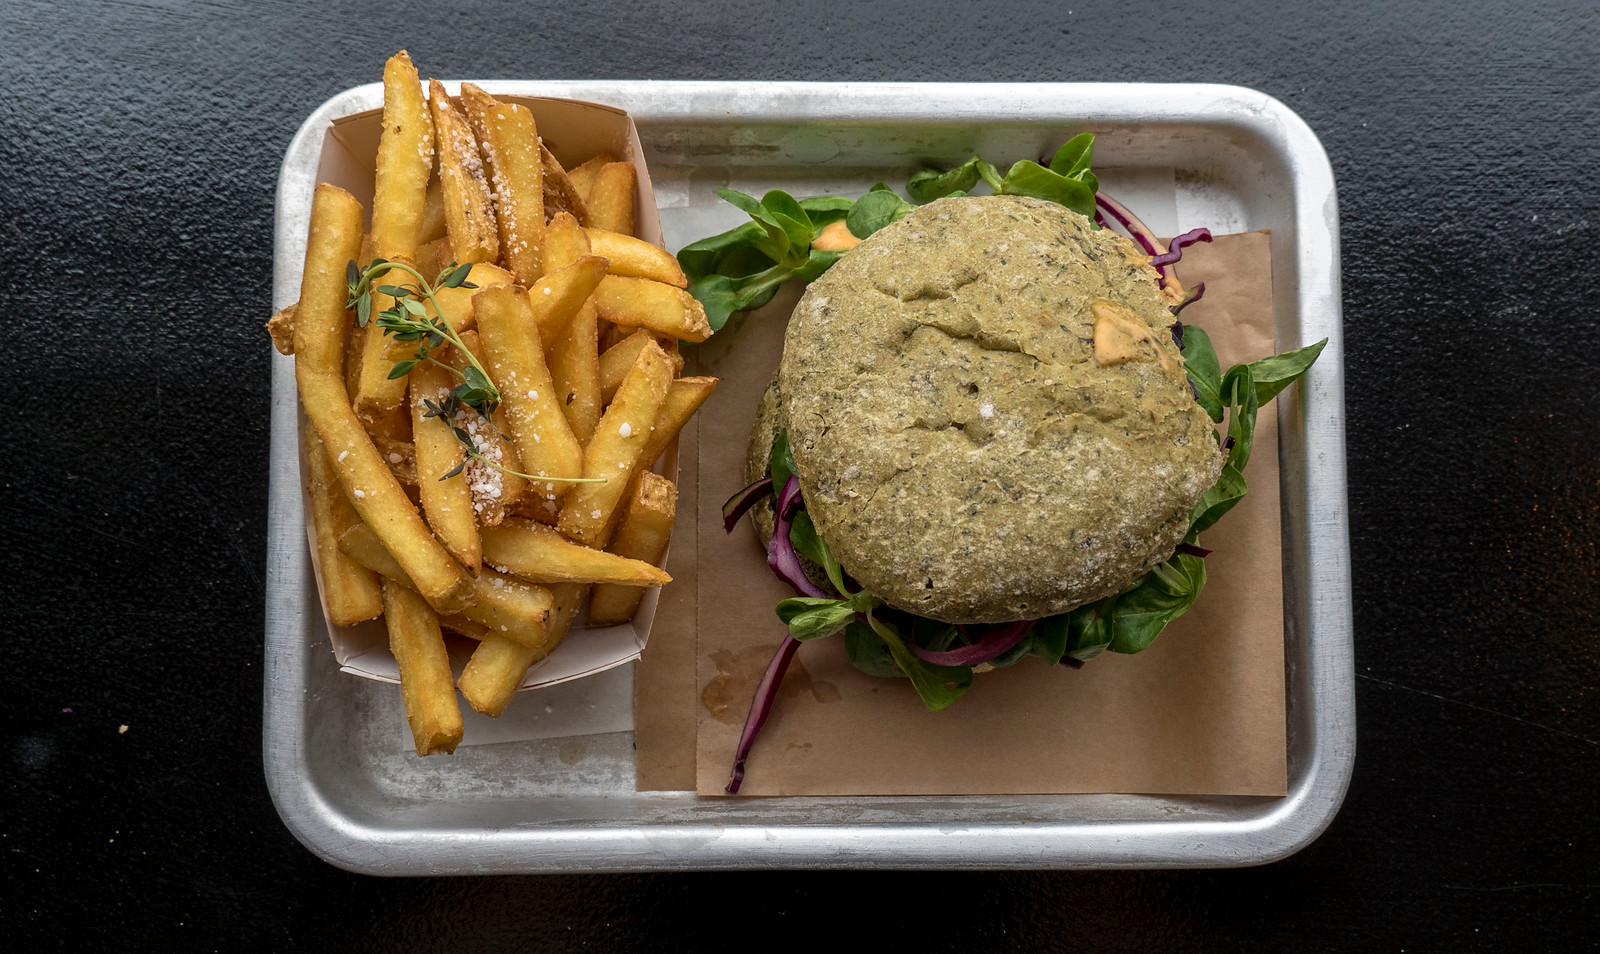 Green Burger - Vegan Burger restaurant in Copenhagen